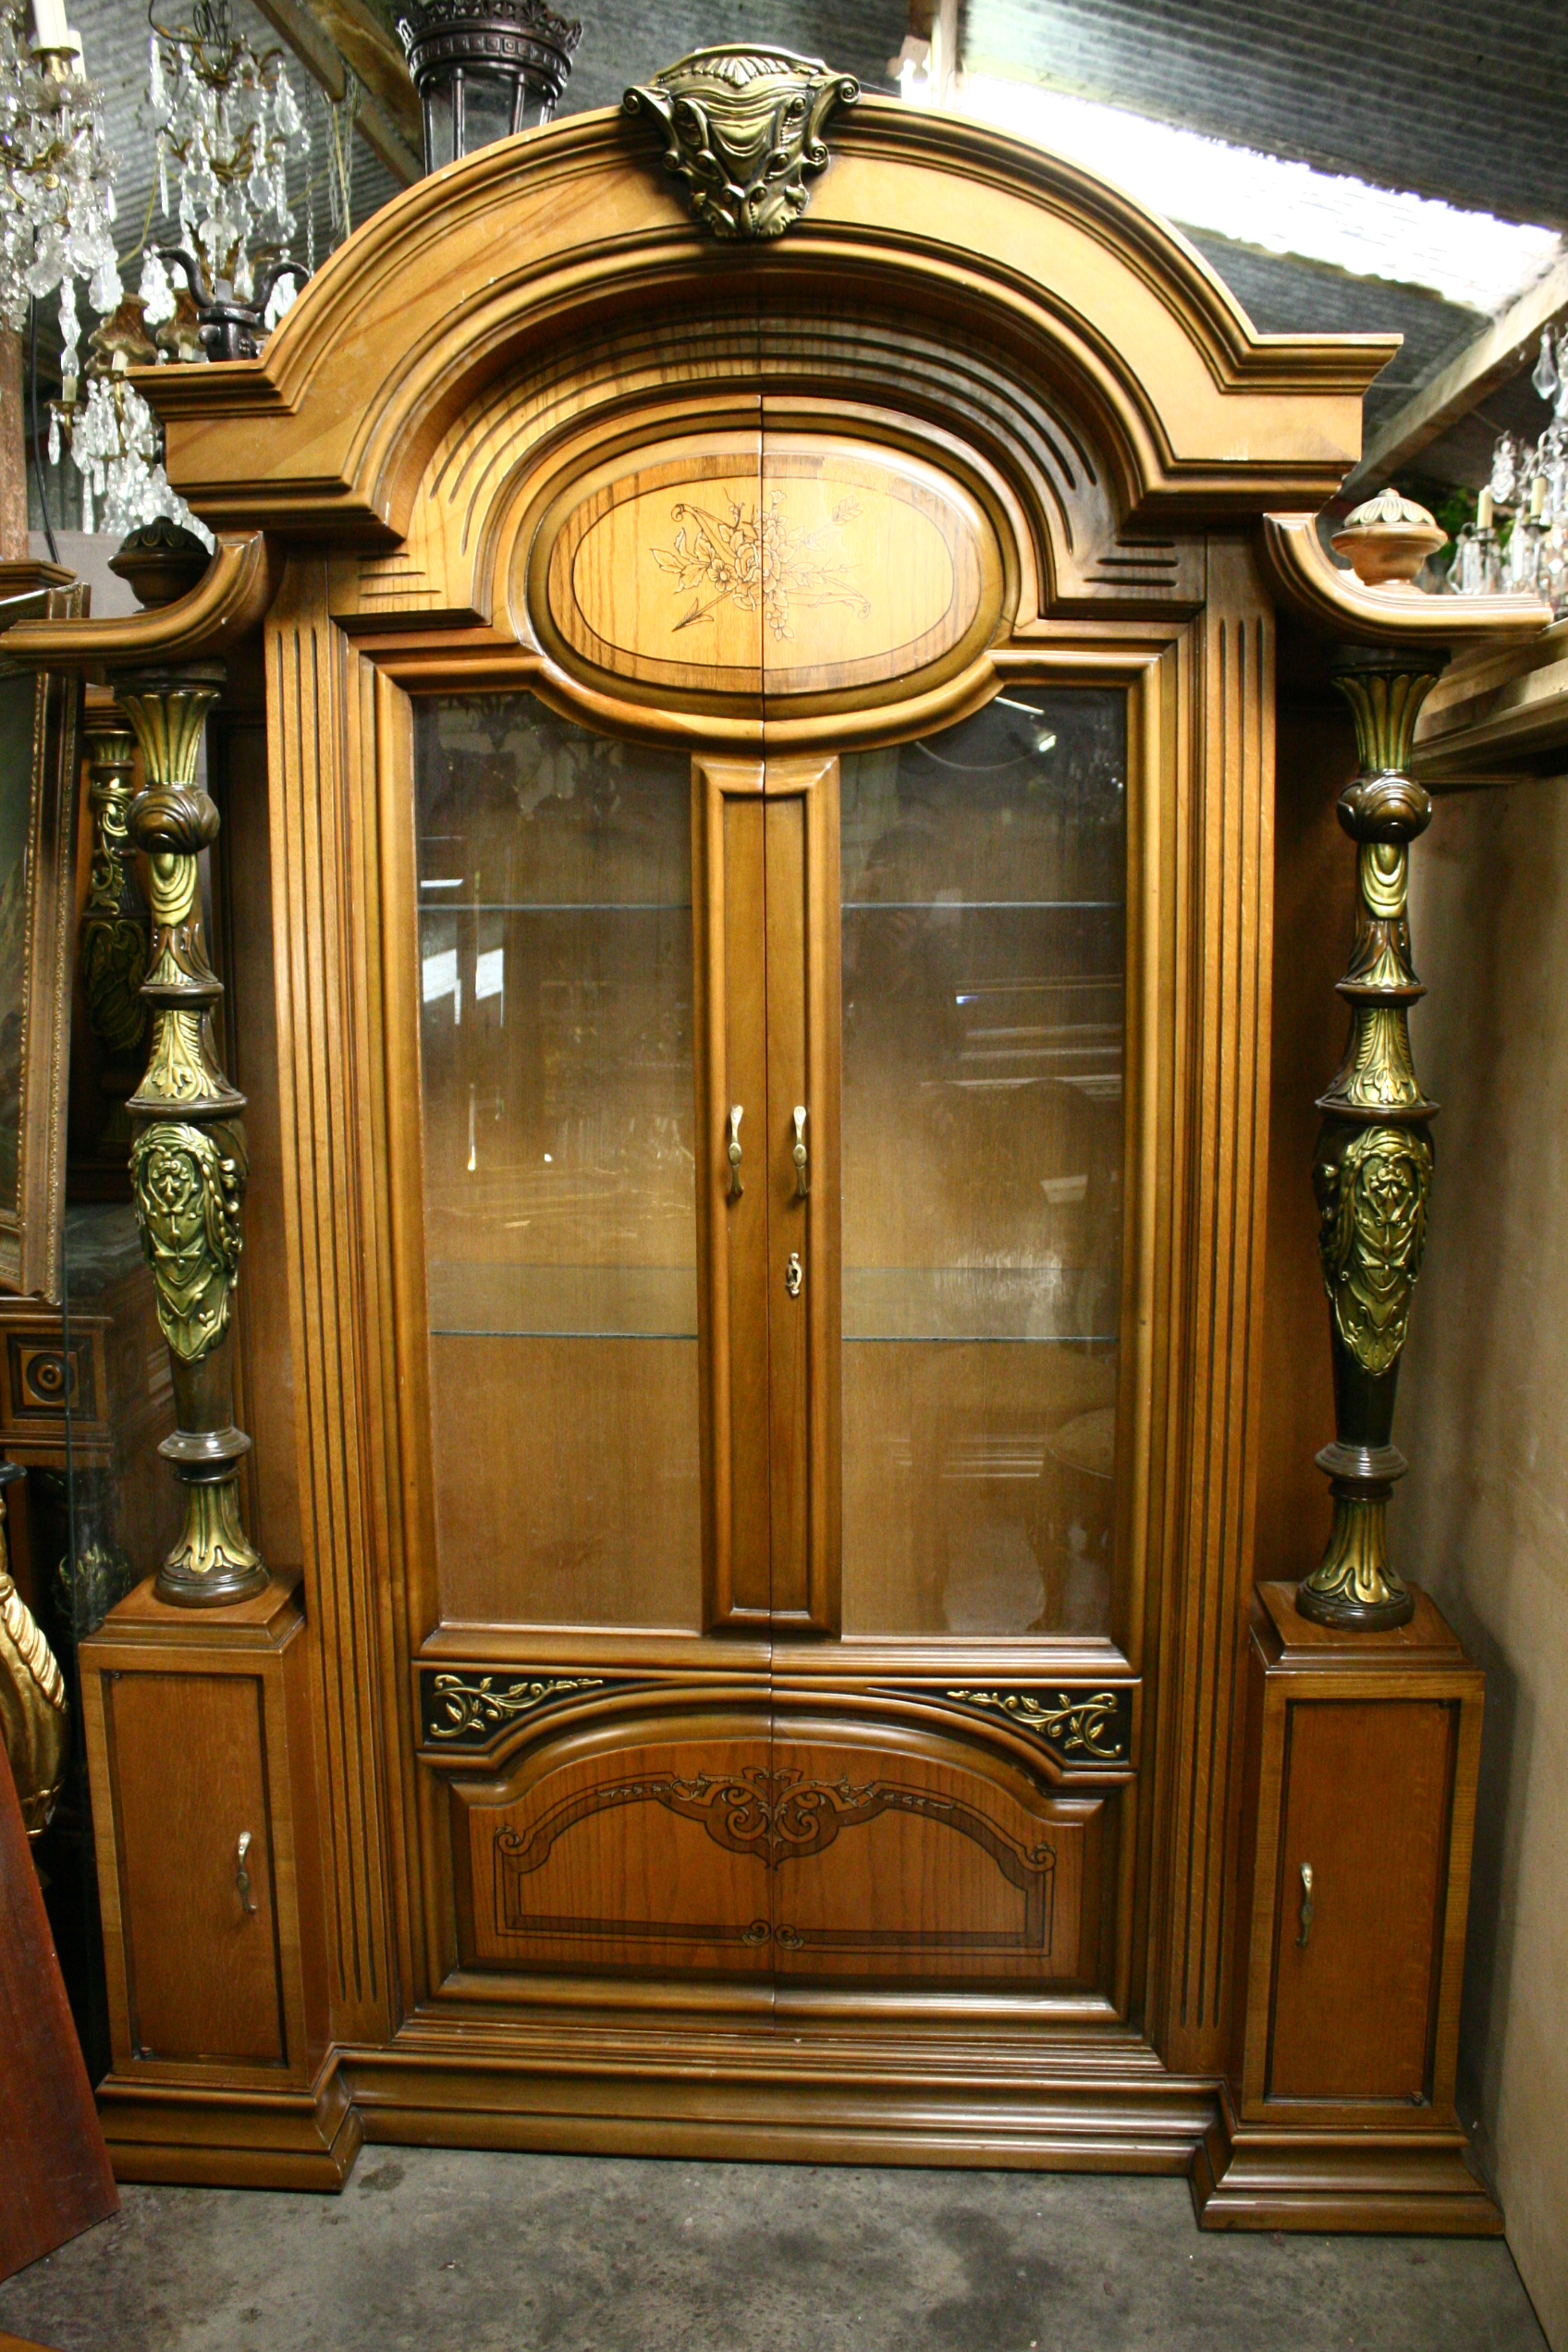 American display cabinet with solid carved wood pillars a large pediment..a good solid well made piece about 50 years old